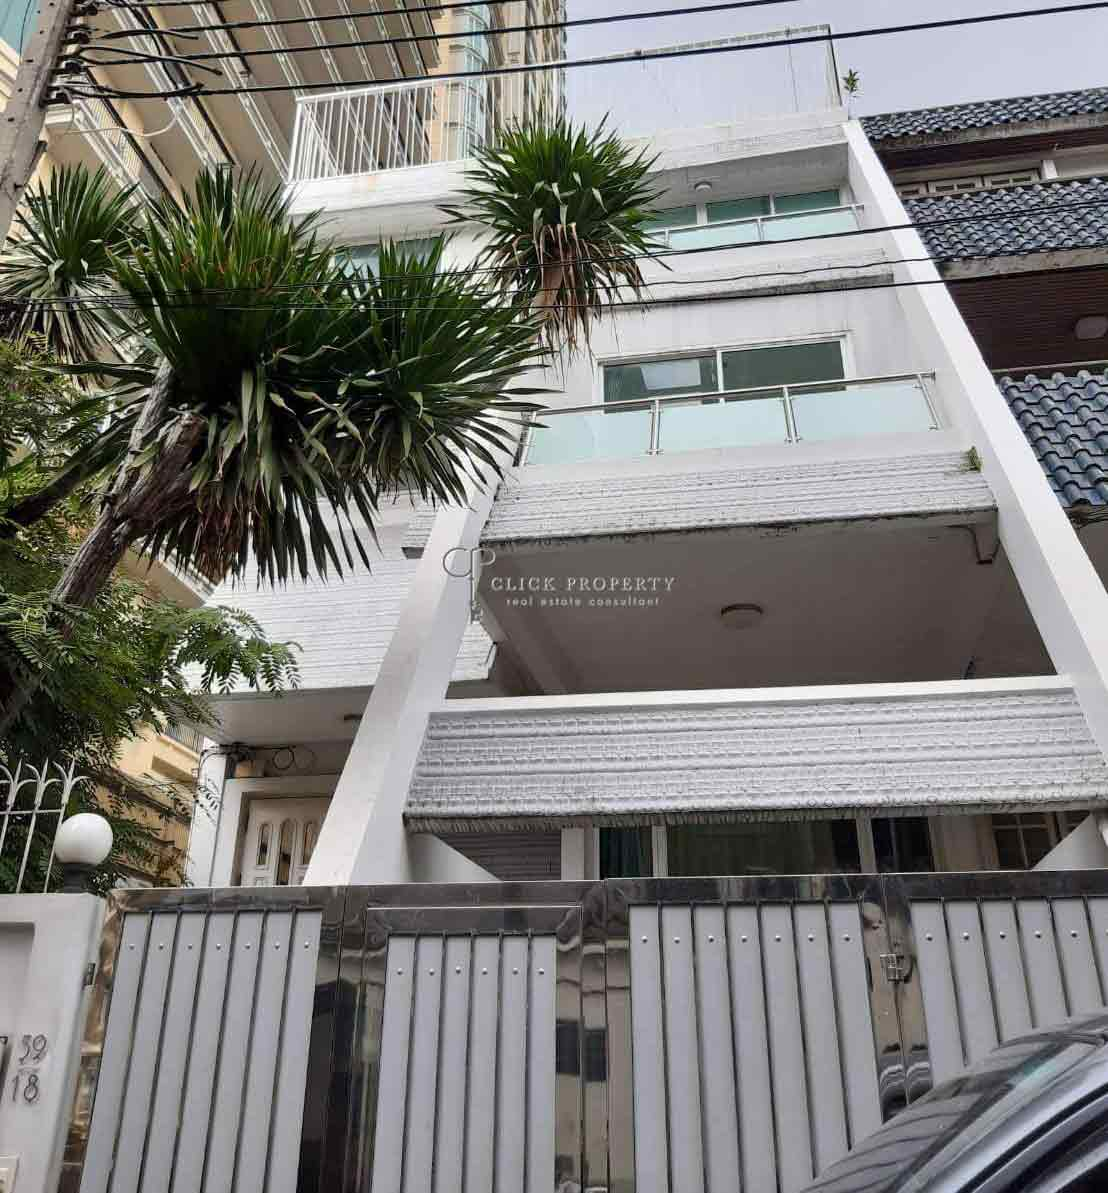 ✦6beds 4baths✦ FOR RENT Townhome 4.5ชั้น @ Sukhumvit soi 31 Next to Royce Condominium | ให้เช่า บ้าน